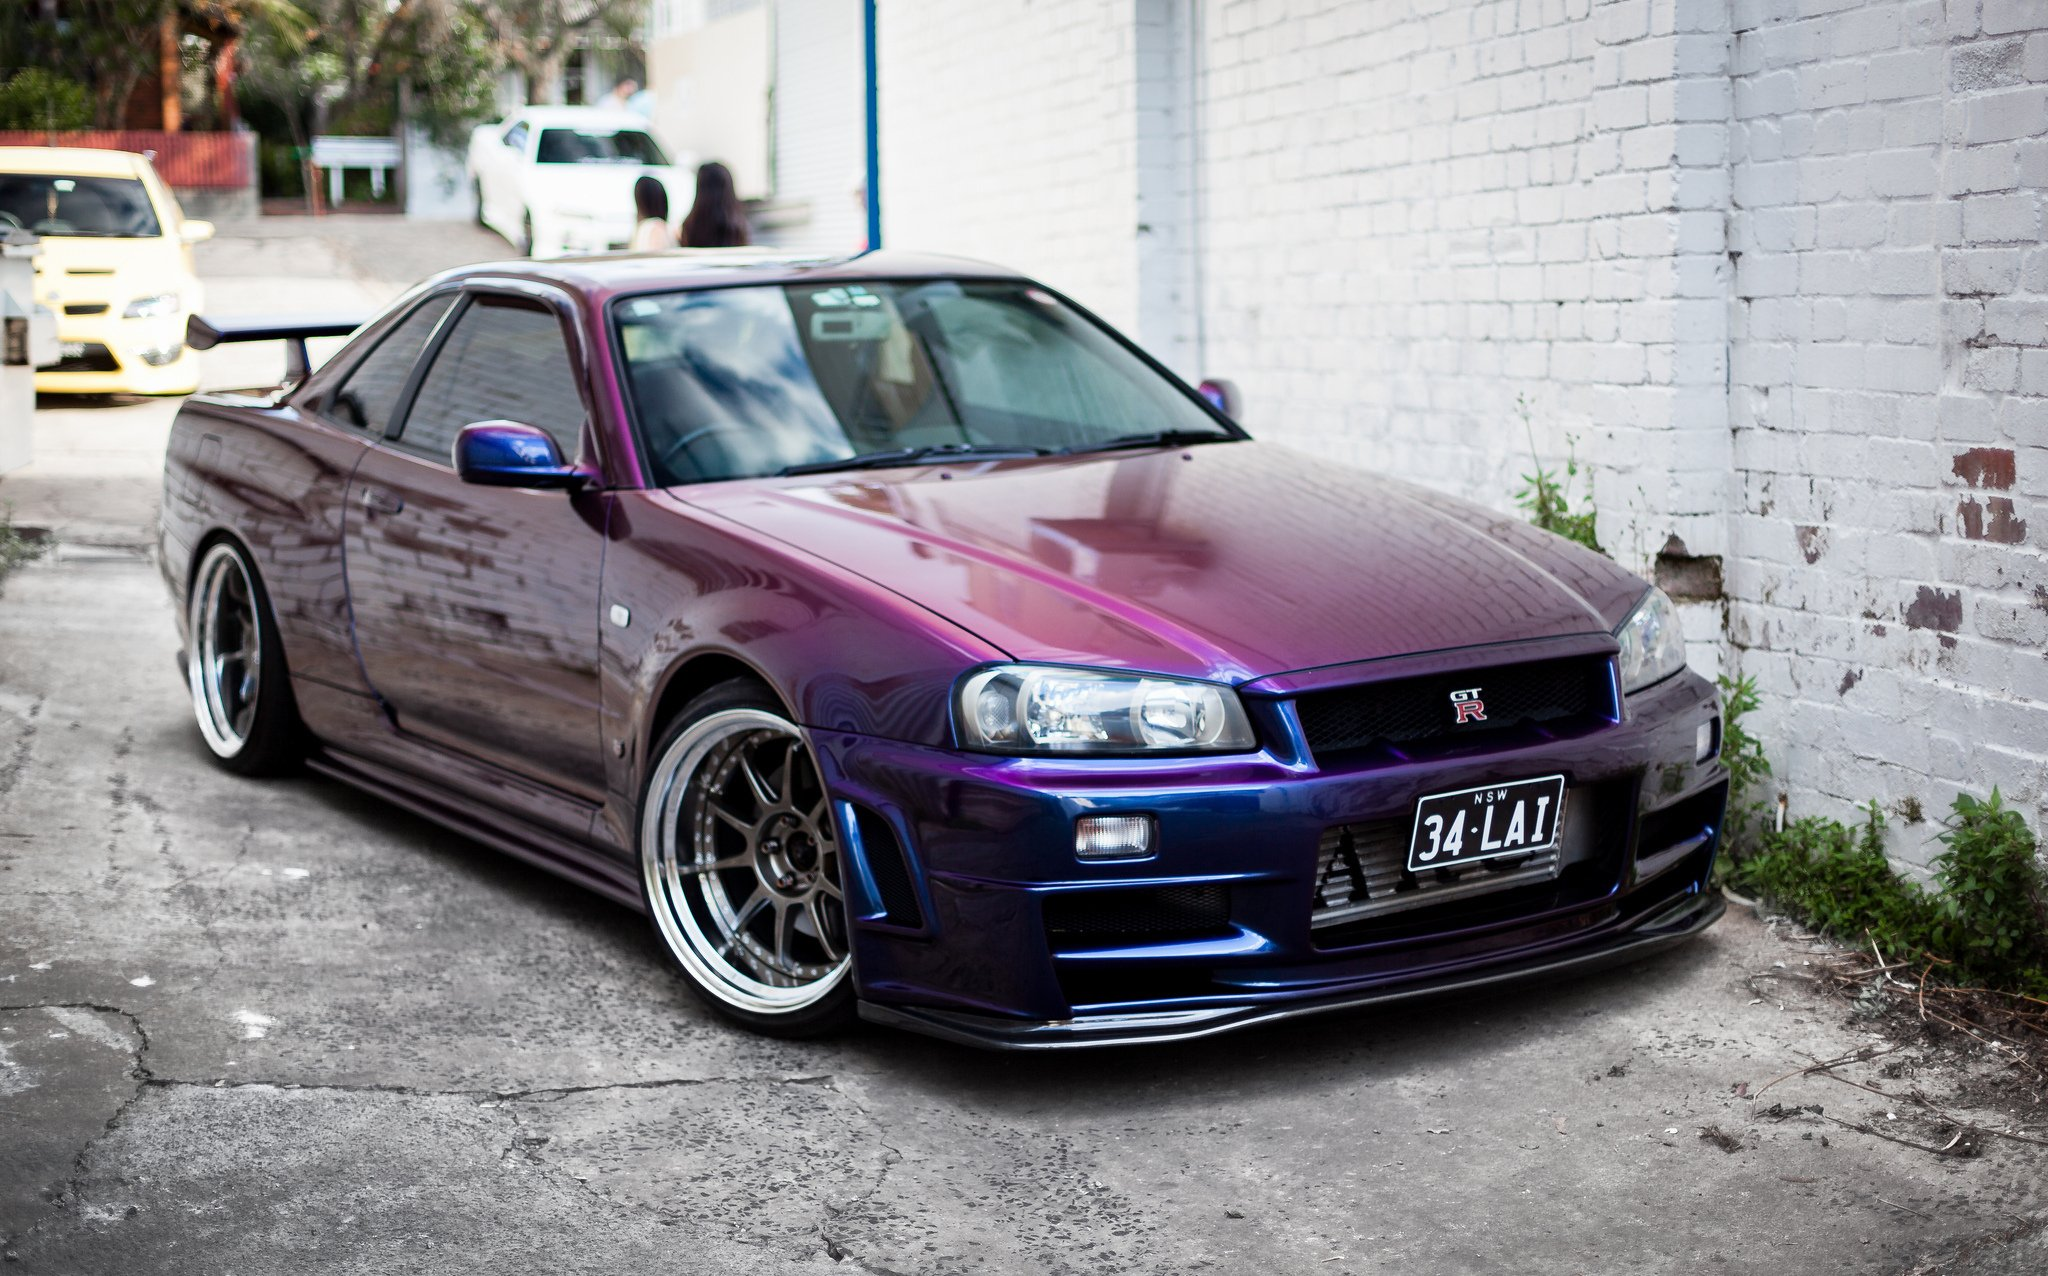 Nissan Skyline Gtr R34 Car Wallpaper | 2048x1276 | 445483 | WallpaperUP